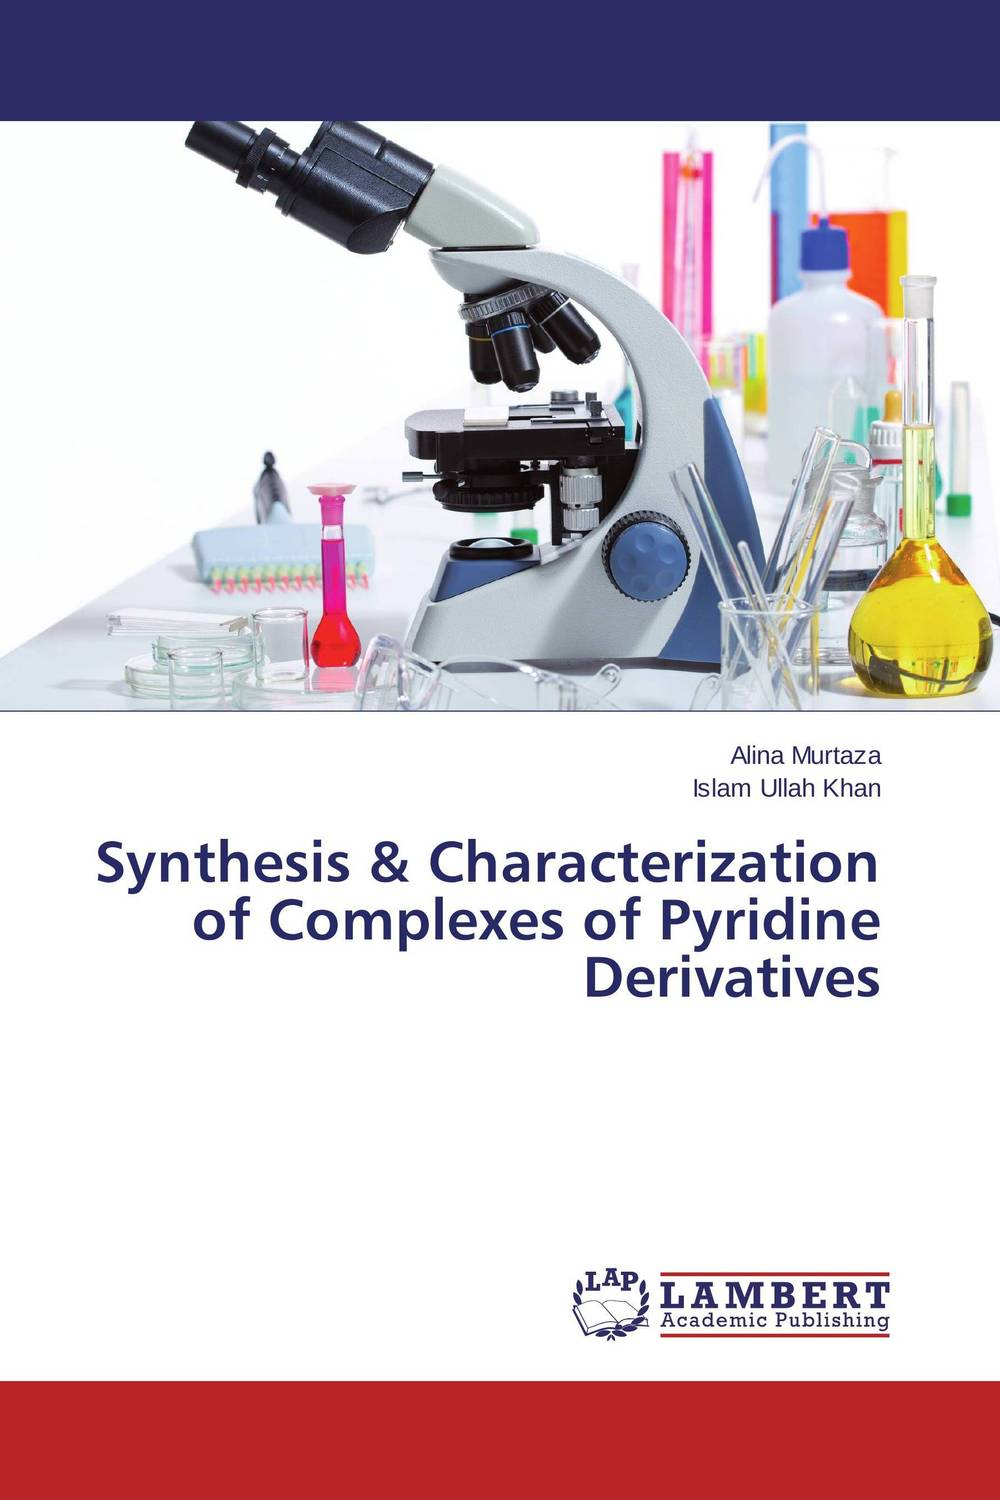 Synthesis & Characterization of Complexes of Pyridine Derivatives synthesis characterization and applications of nano cdha